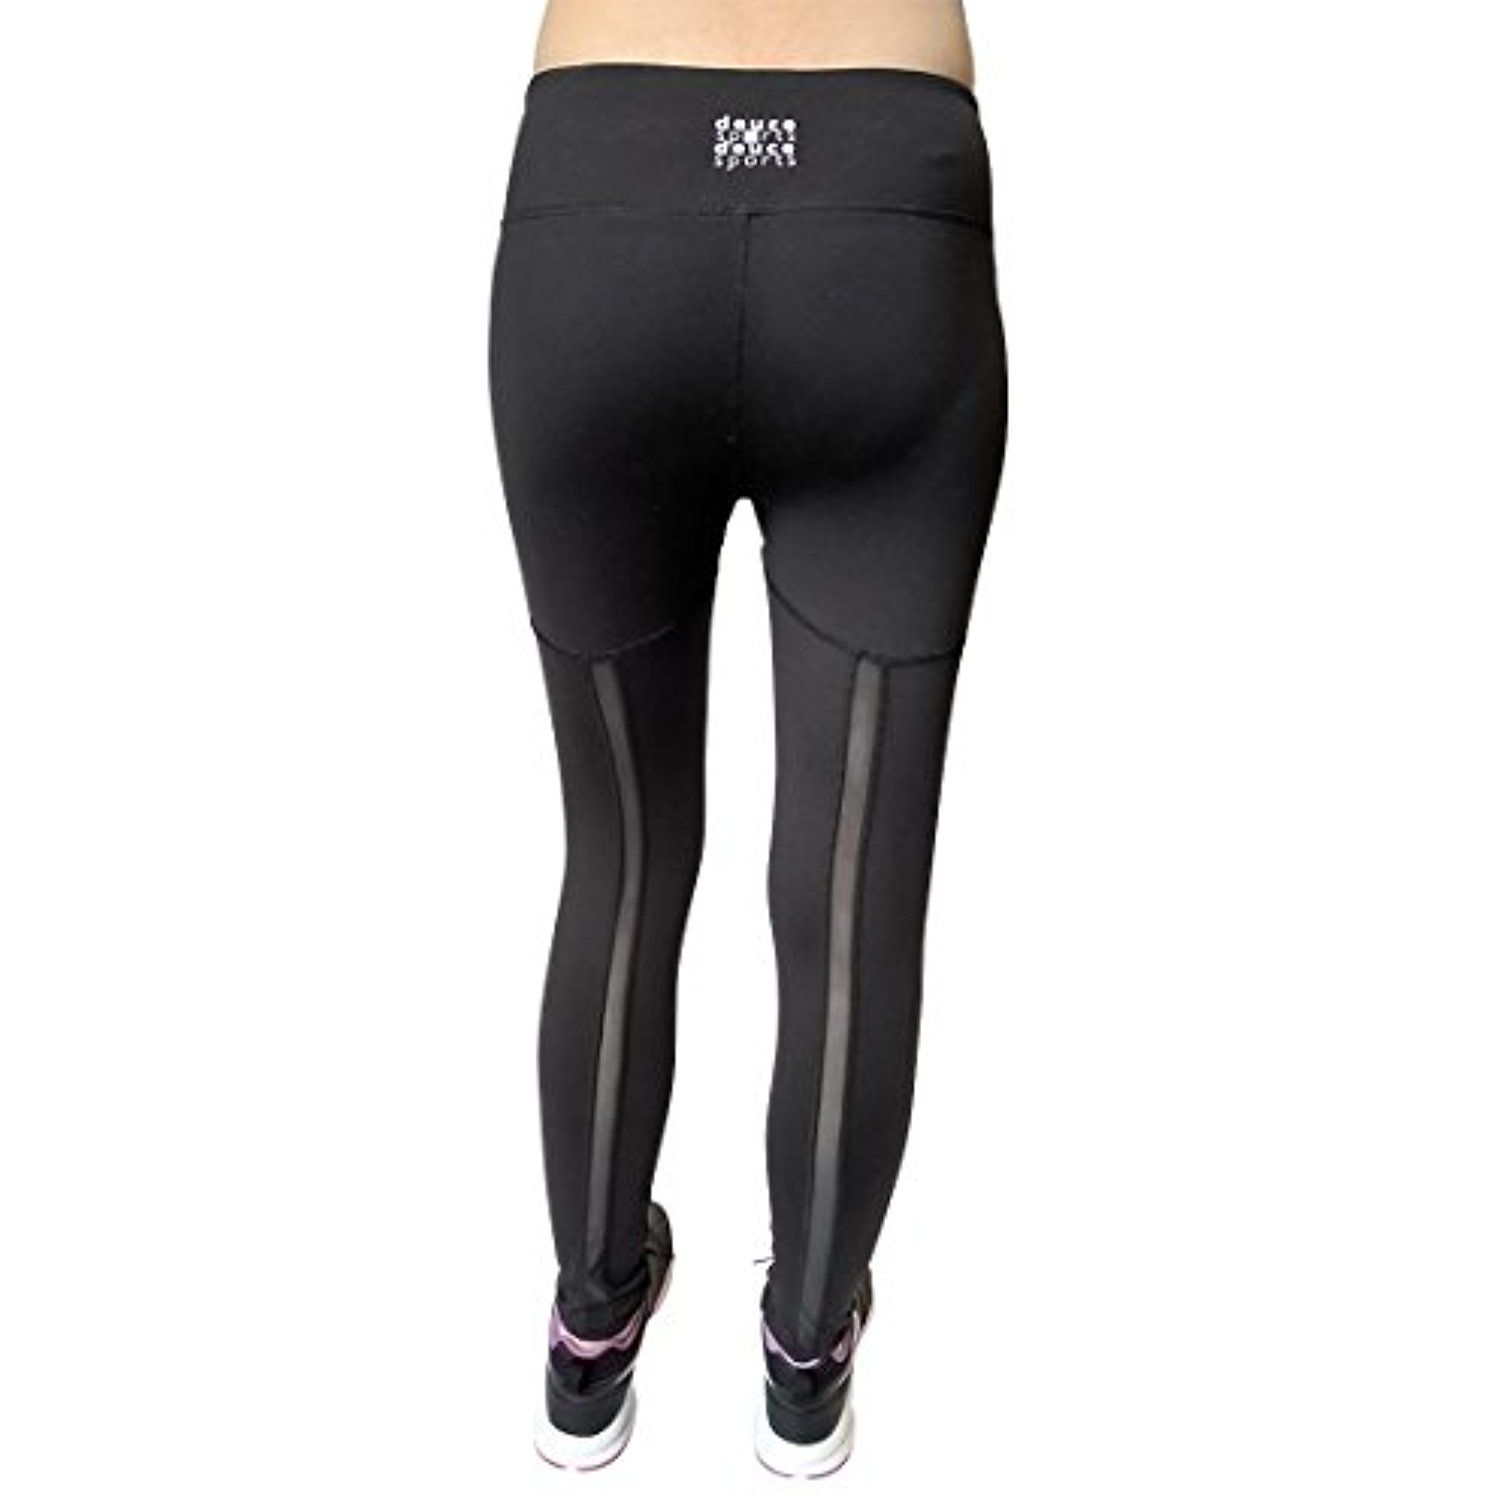 e3e6b7d2f1bb24 DEUCE SPORTS JAZZ Womens Black Workout Pants | Slimming Yoga Legging with  High Waist | Skin Tight Fit Perfect for Yoga Athletics Running Tennis --  Check out ...